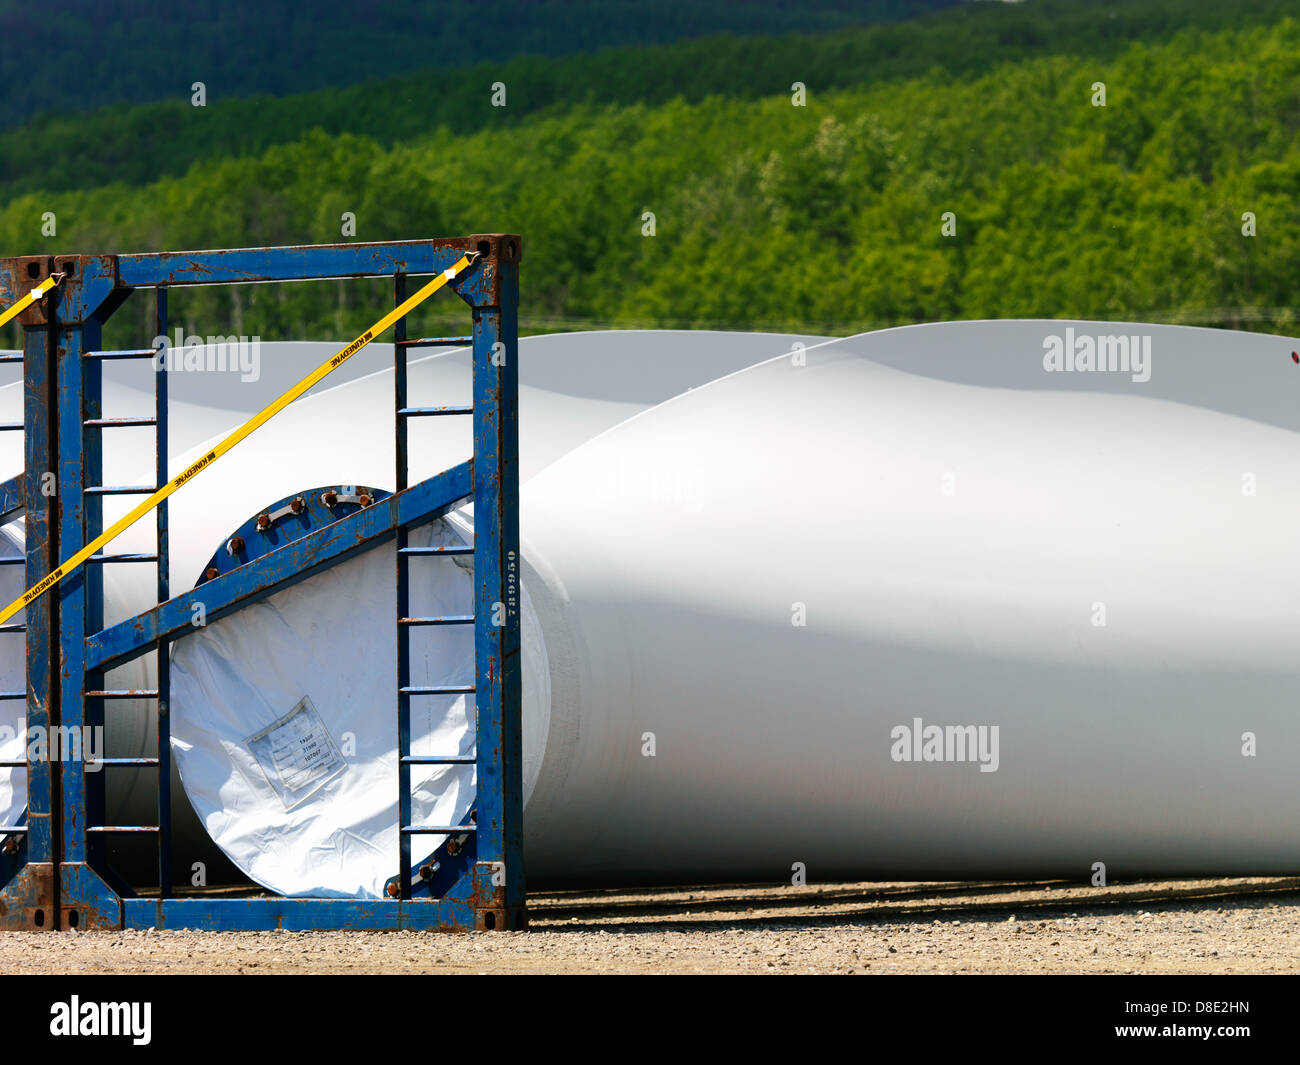 A wind turbine is a device that converts kinetic energy from the wind, also called wind energy, into mechanical - Stock Image